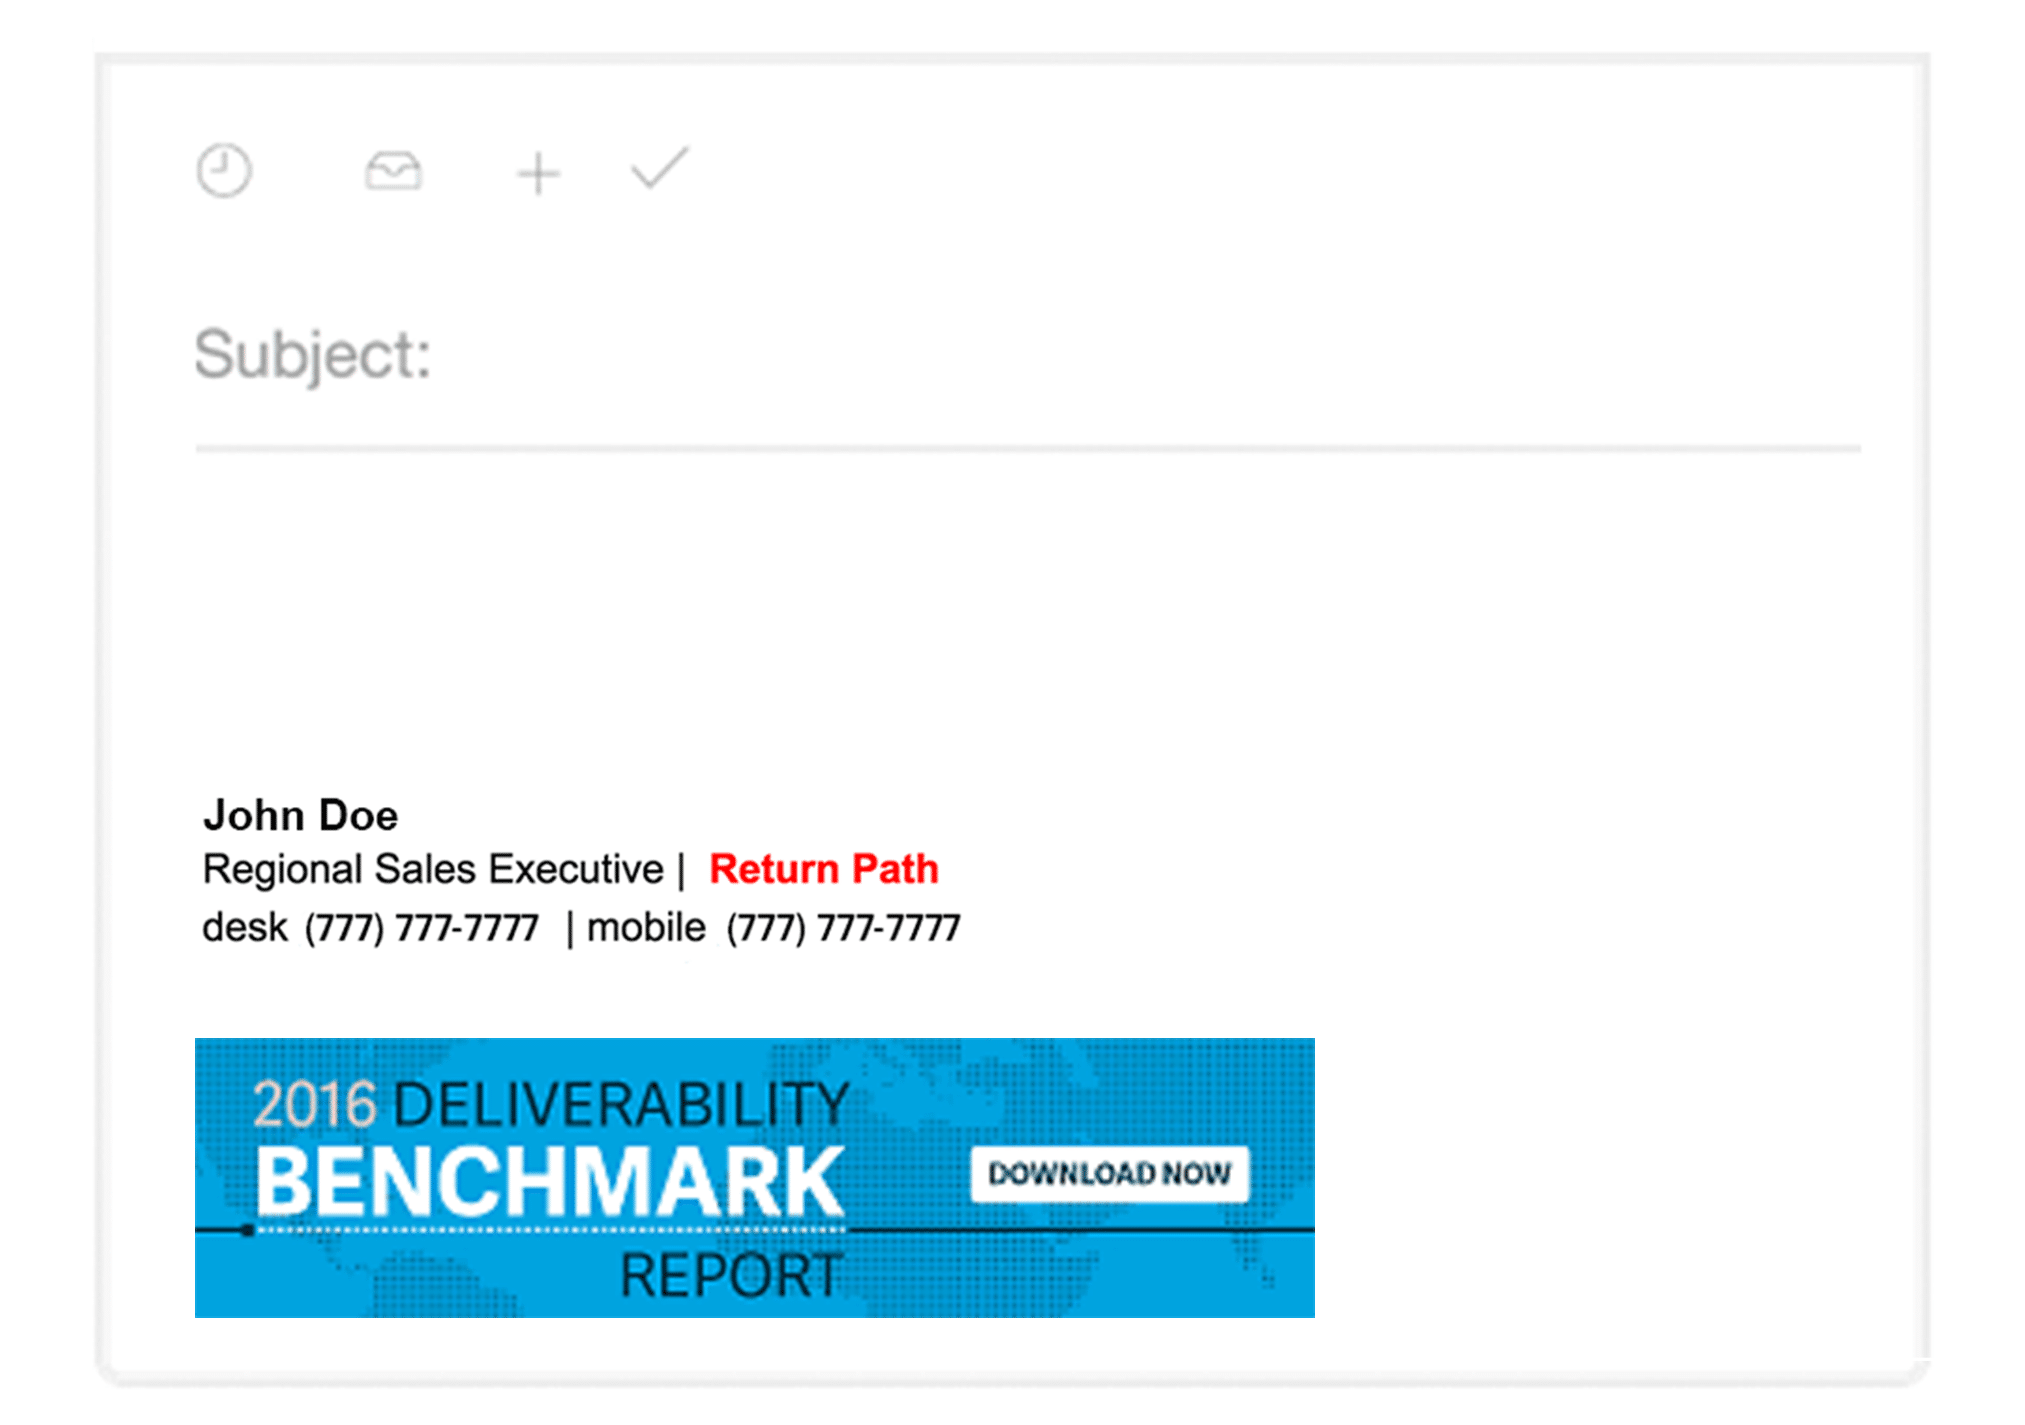 Office email signature example 2